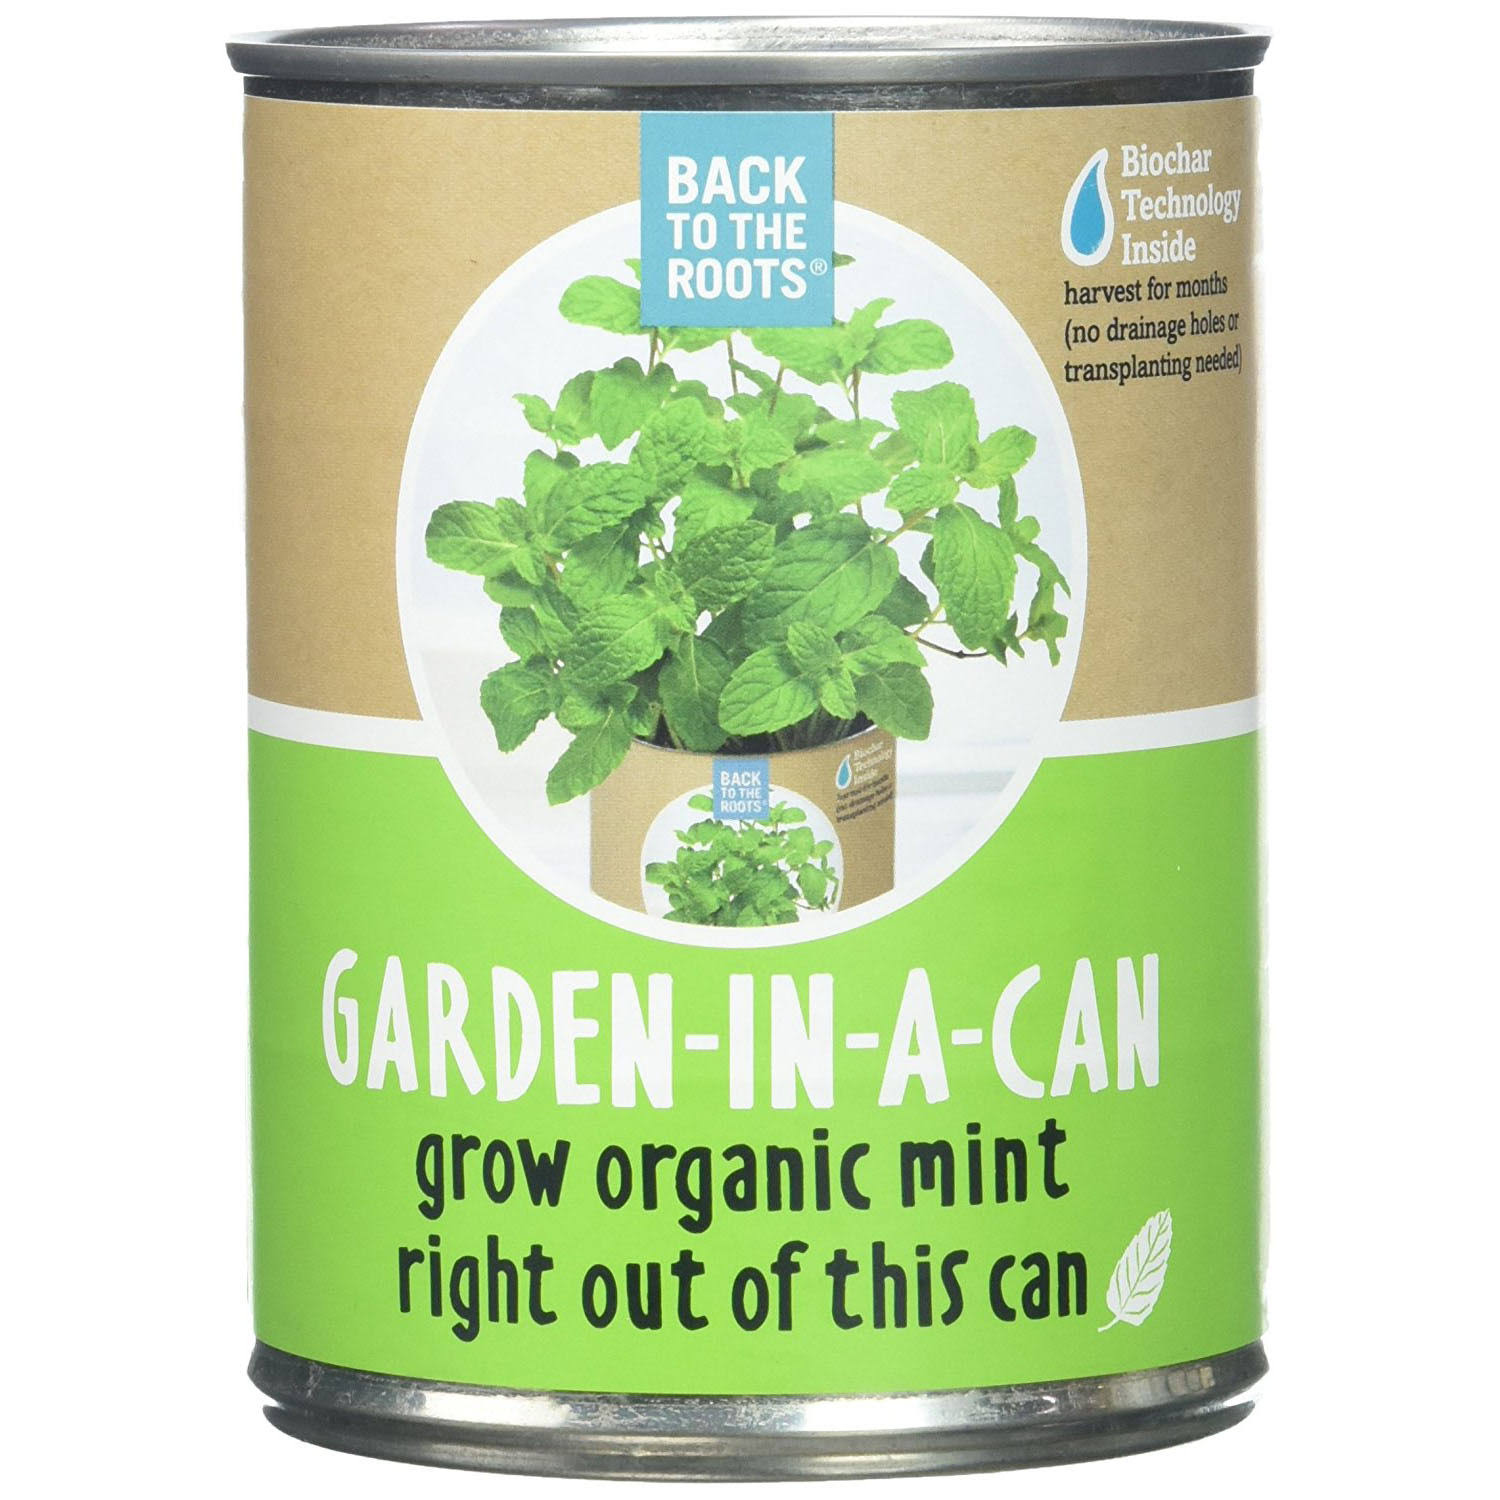 Back to the Roots Garden-in-a-Can Organic Mint Plant